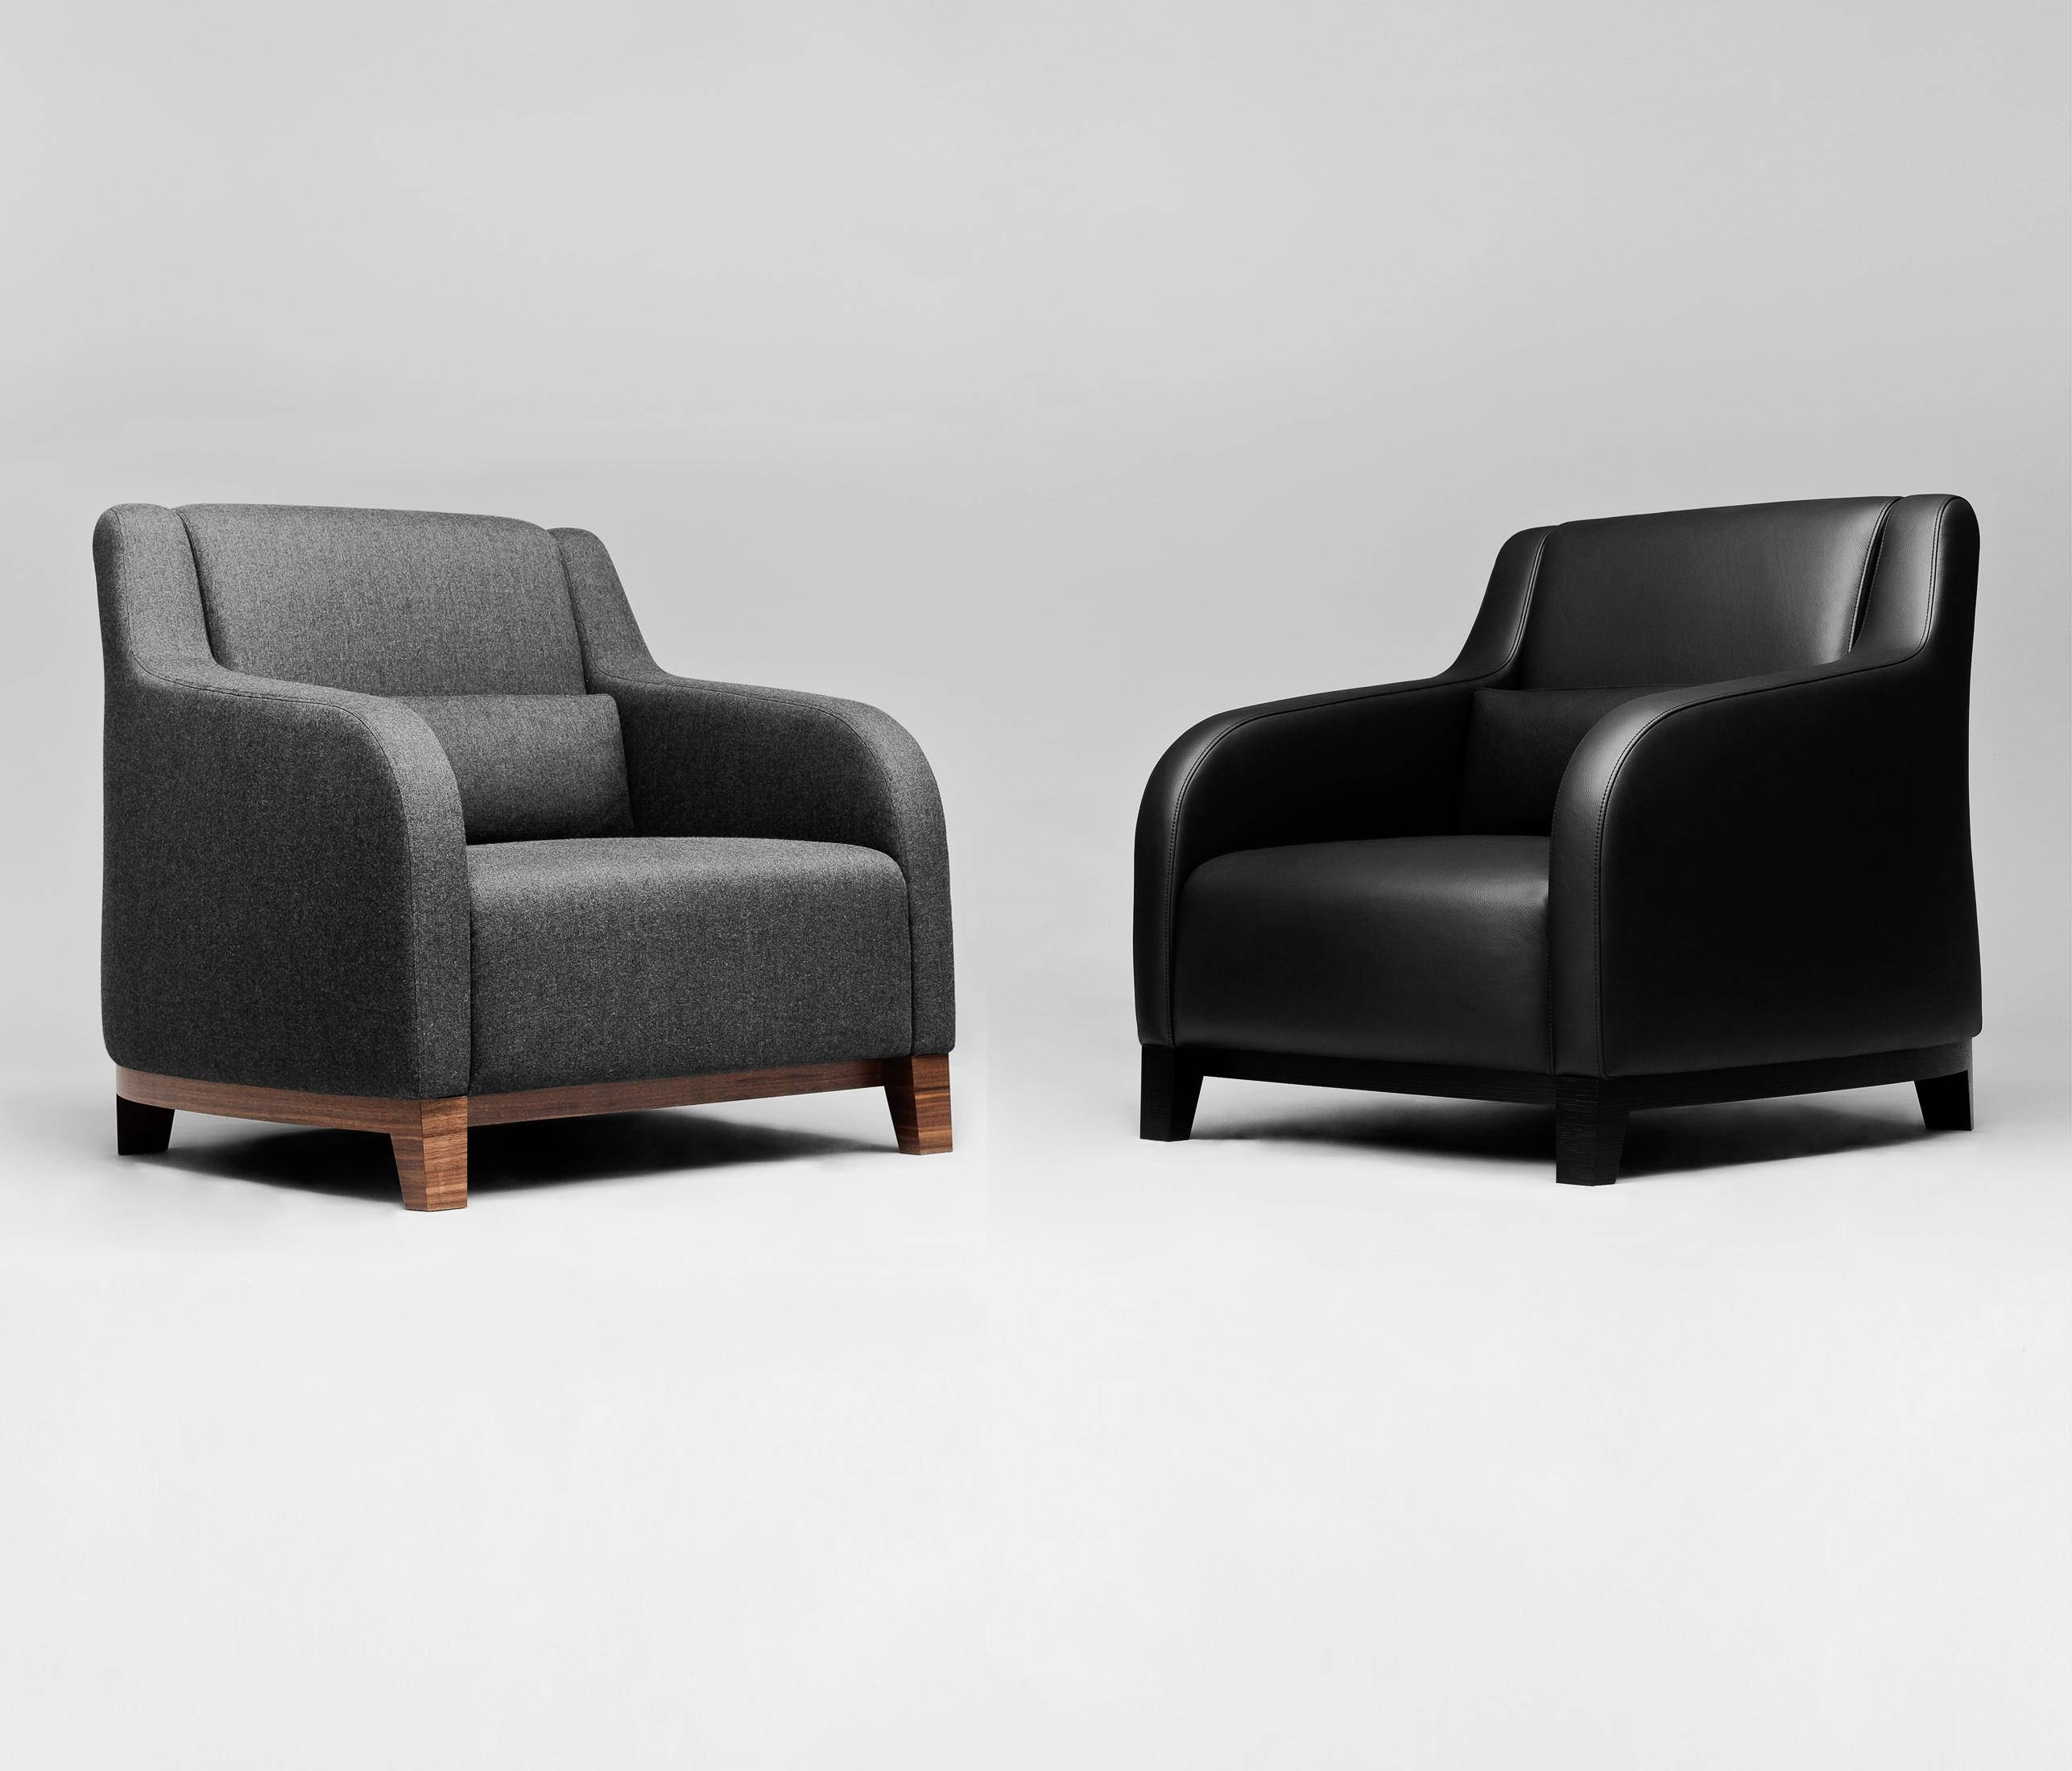 Collins Sofa - Lounge Sofas From Comforty | Architonic with regard to Collins Sofas (Image 6 of 15)